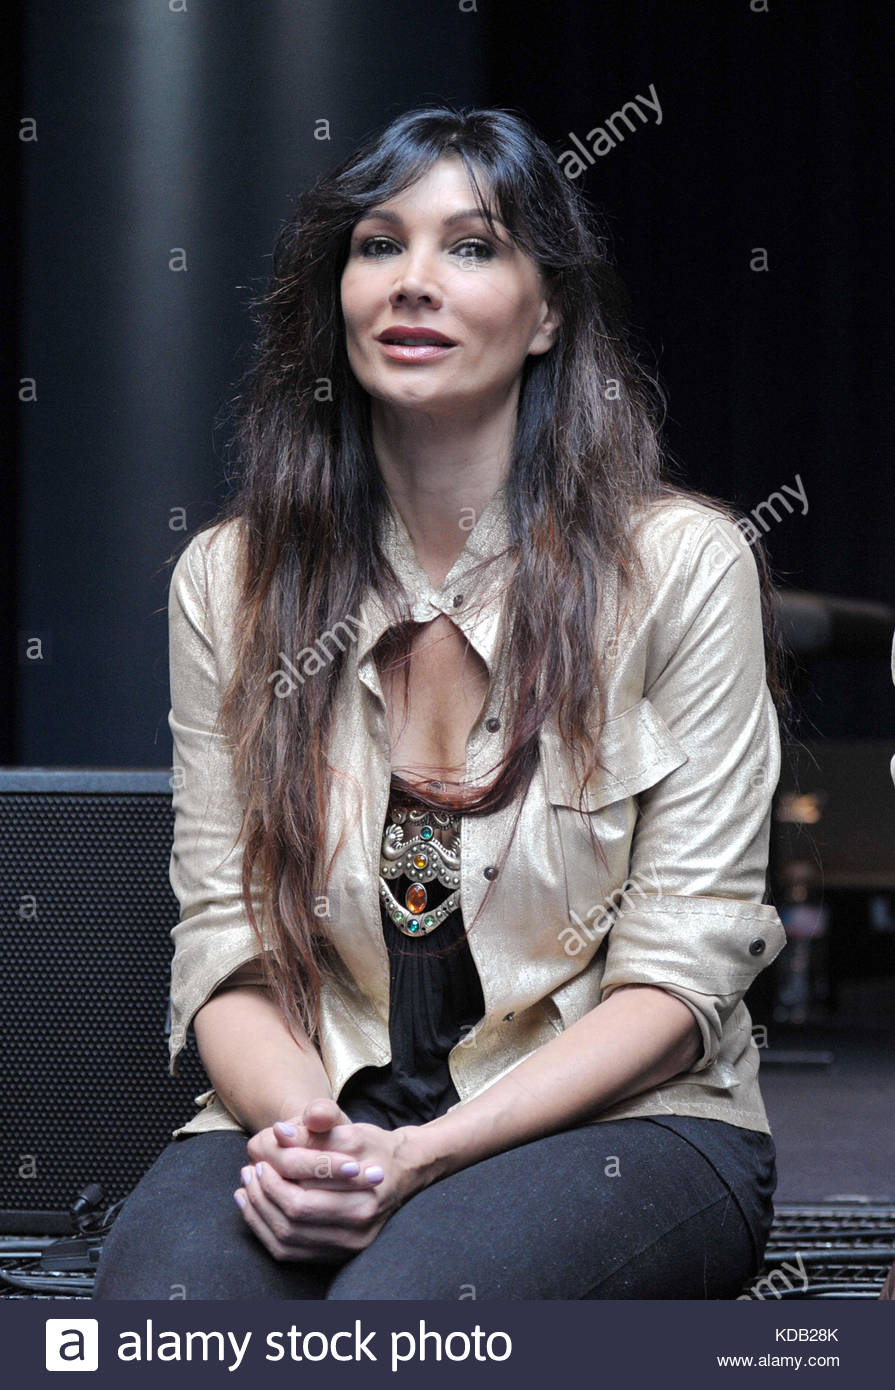 luisa corna at the presentation of the new album prometheus and pandora by sananda maitreya, formerly known as Terence Stock Photo